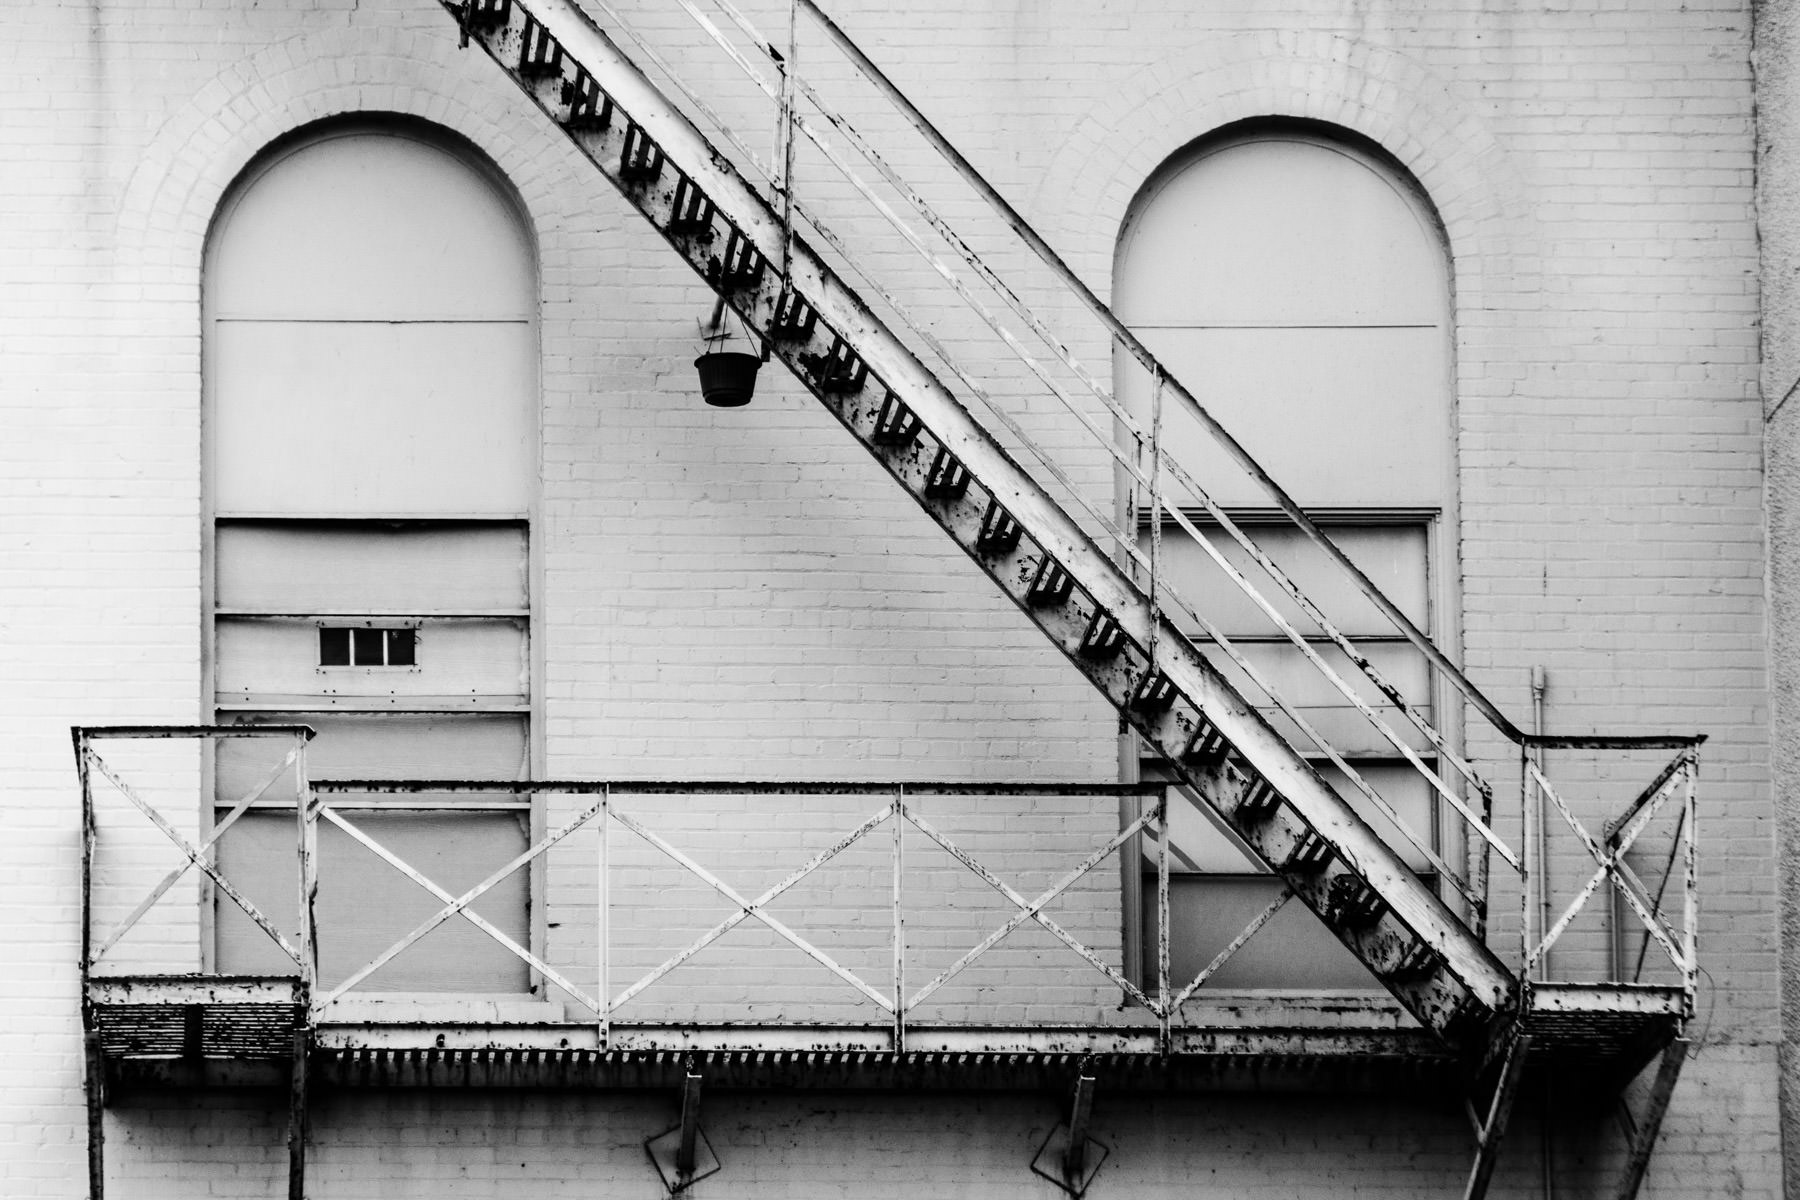 A fire escape on an abandoned building in Deep Ellum, Dallas.